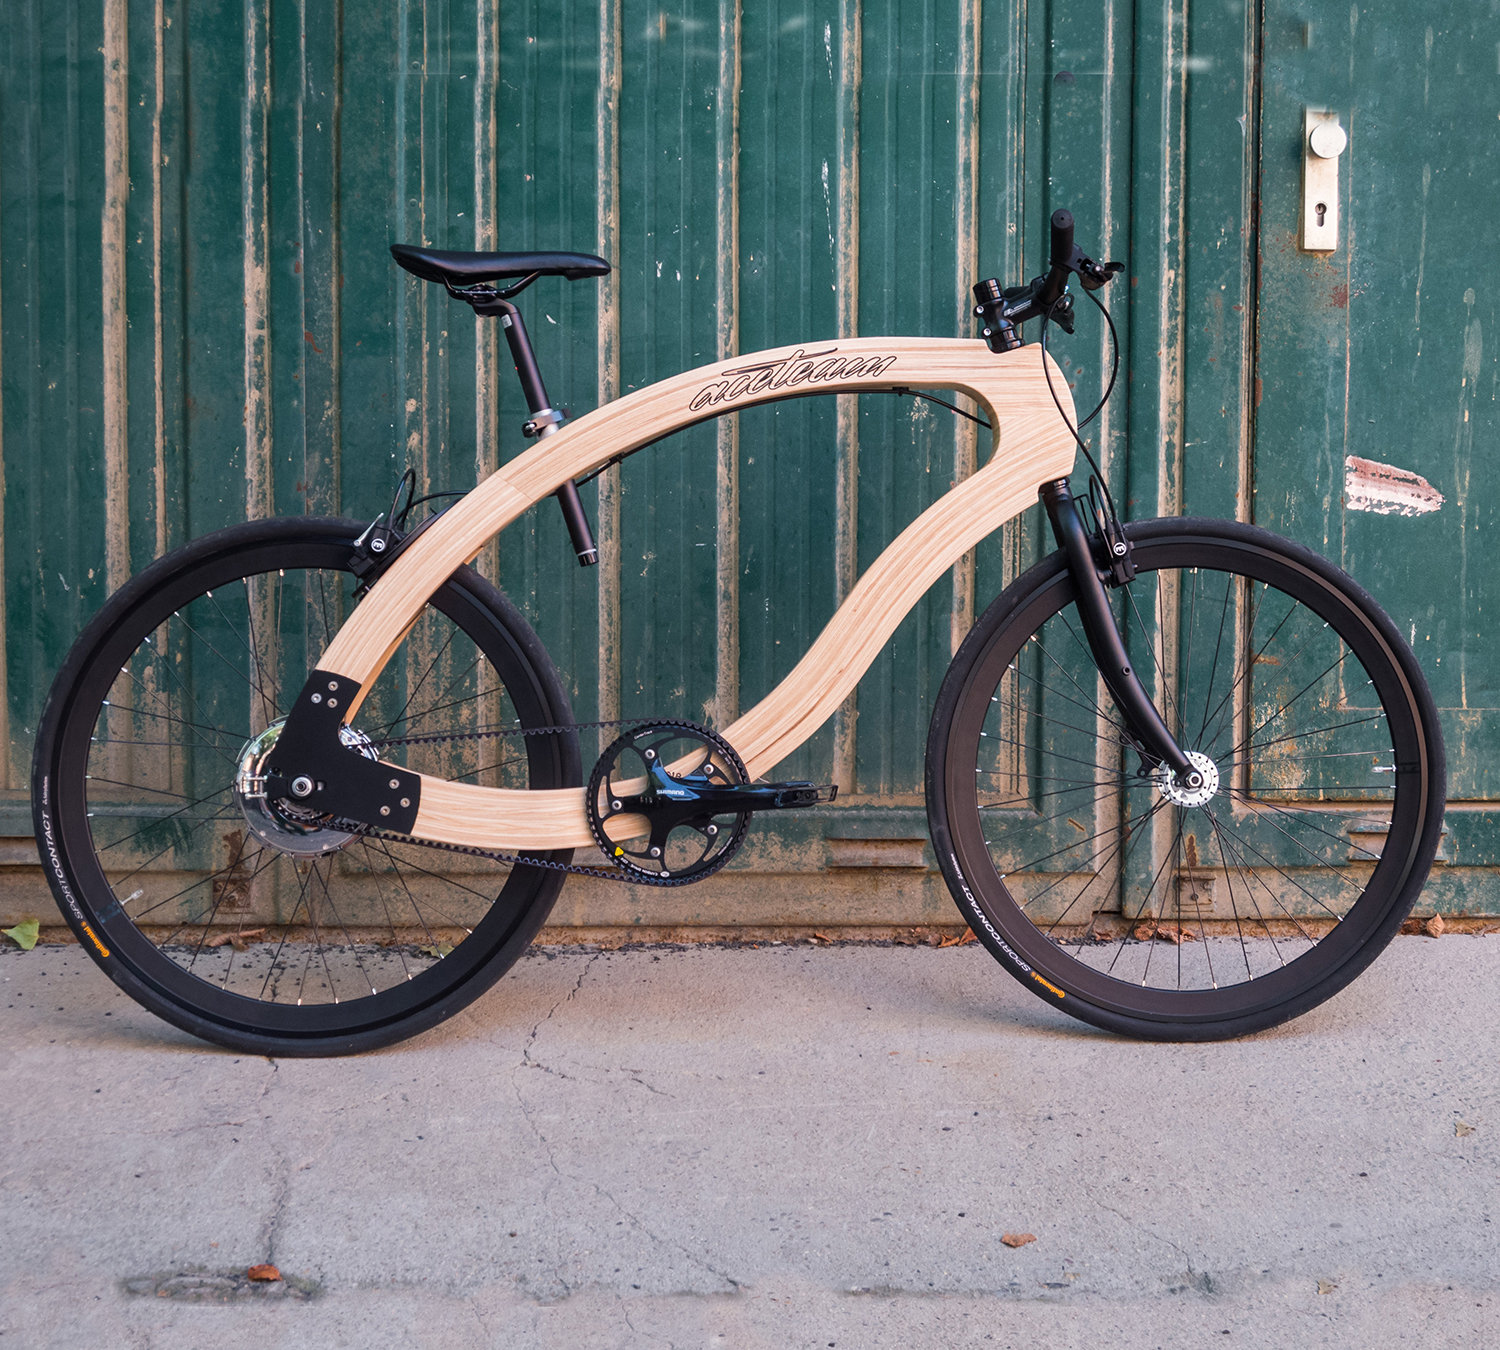 wooden ebike Science meets Sustainability by Matthias Broda, aceteam